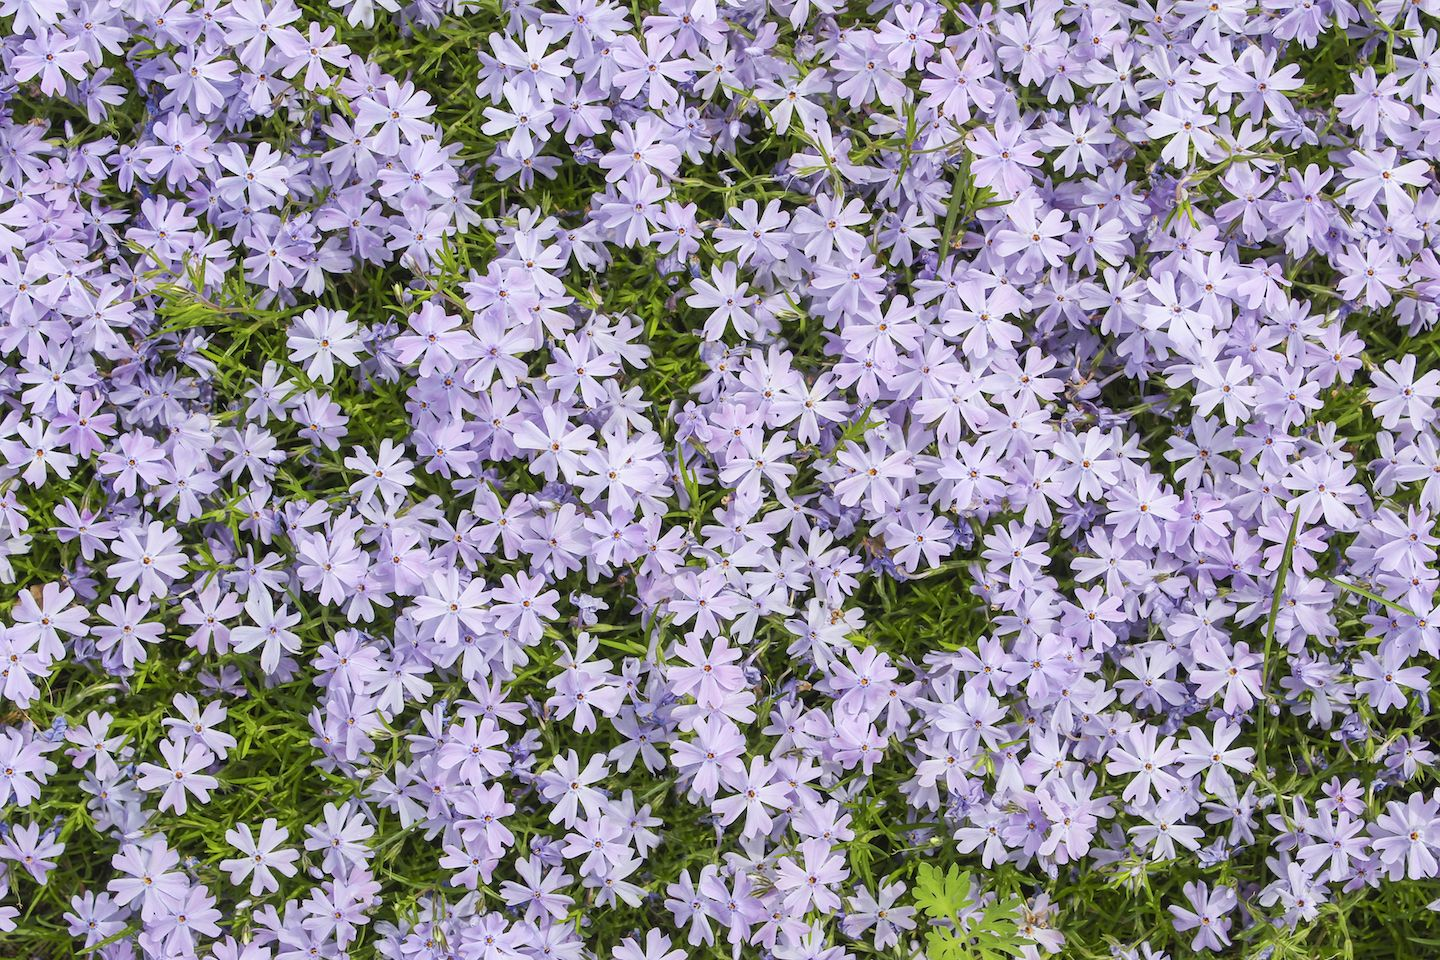 21 hardy easy perennials to plant in canada easy